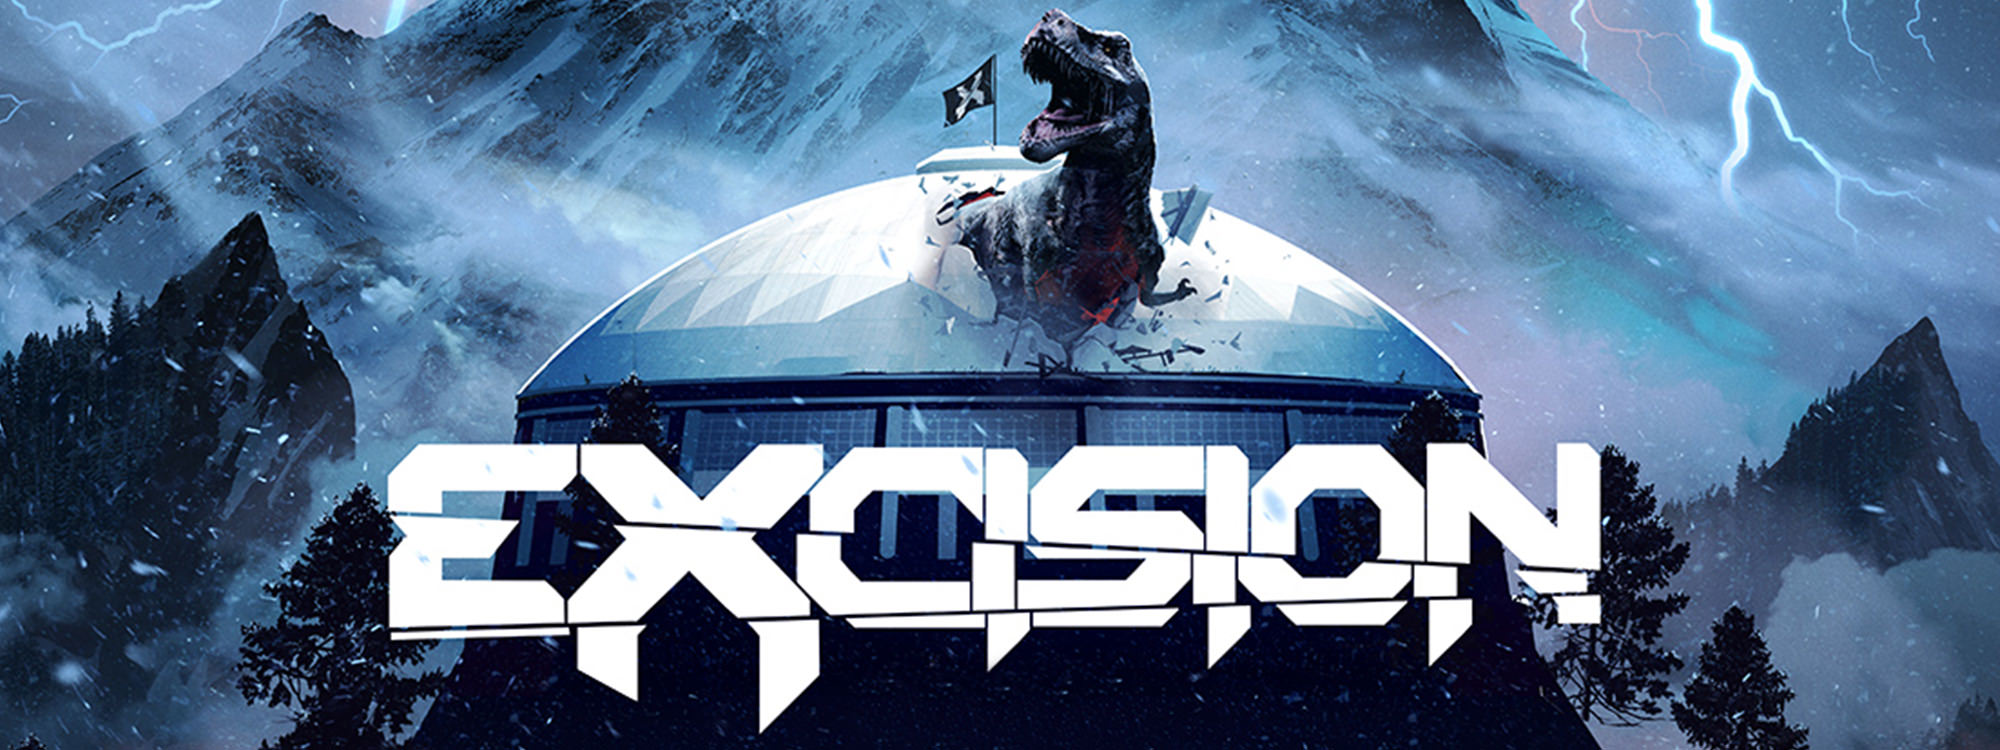 Excision en The Thunderdome